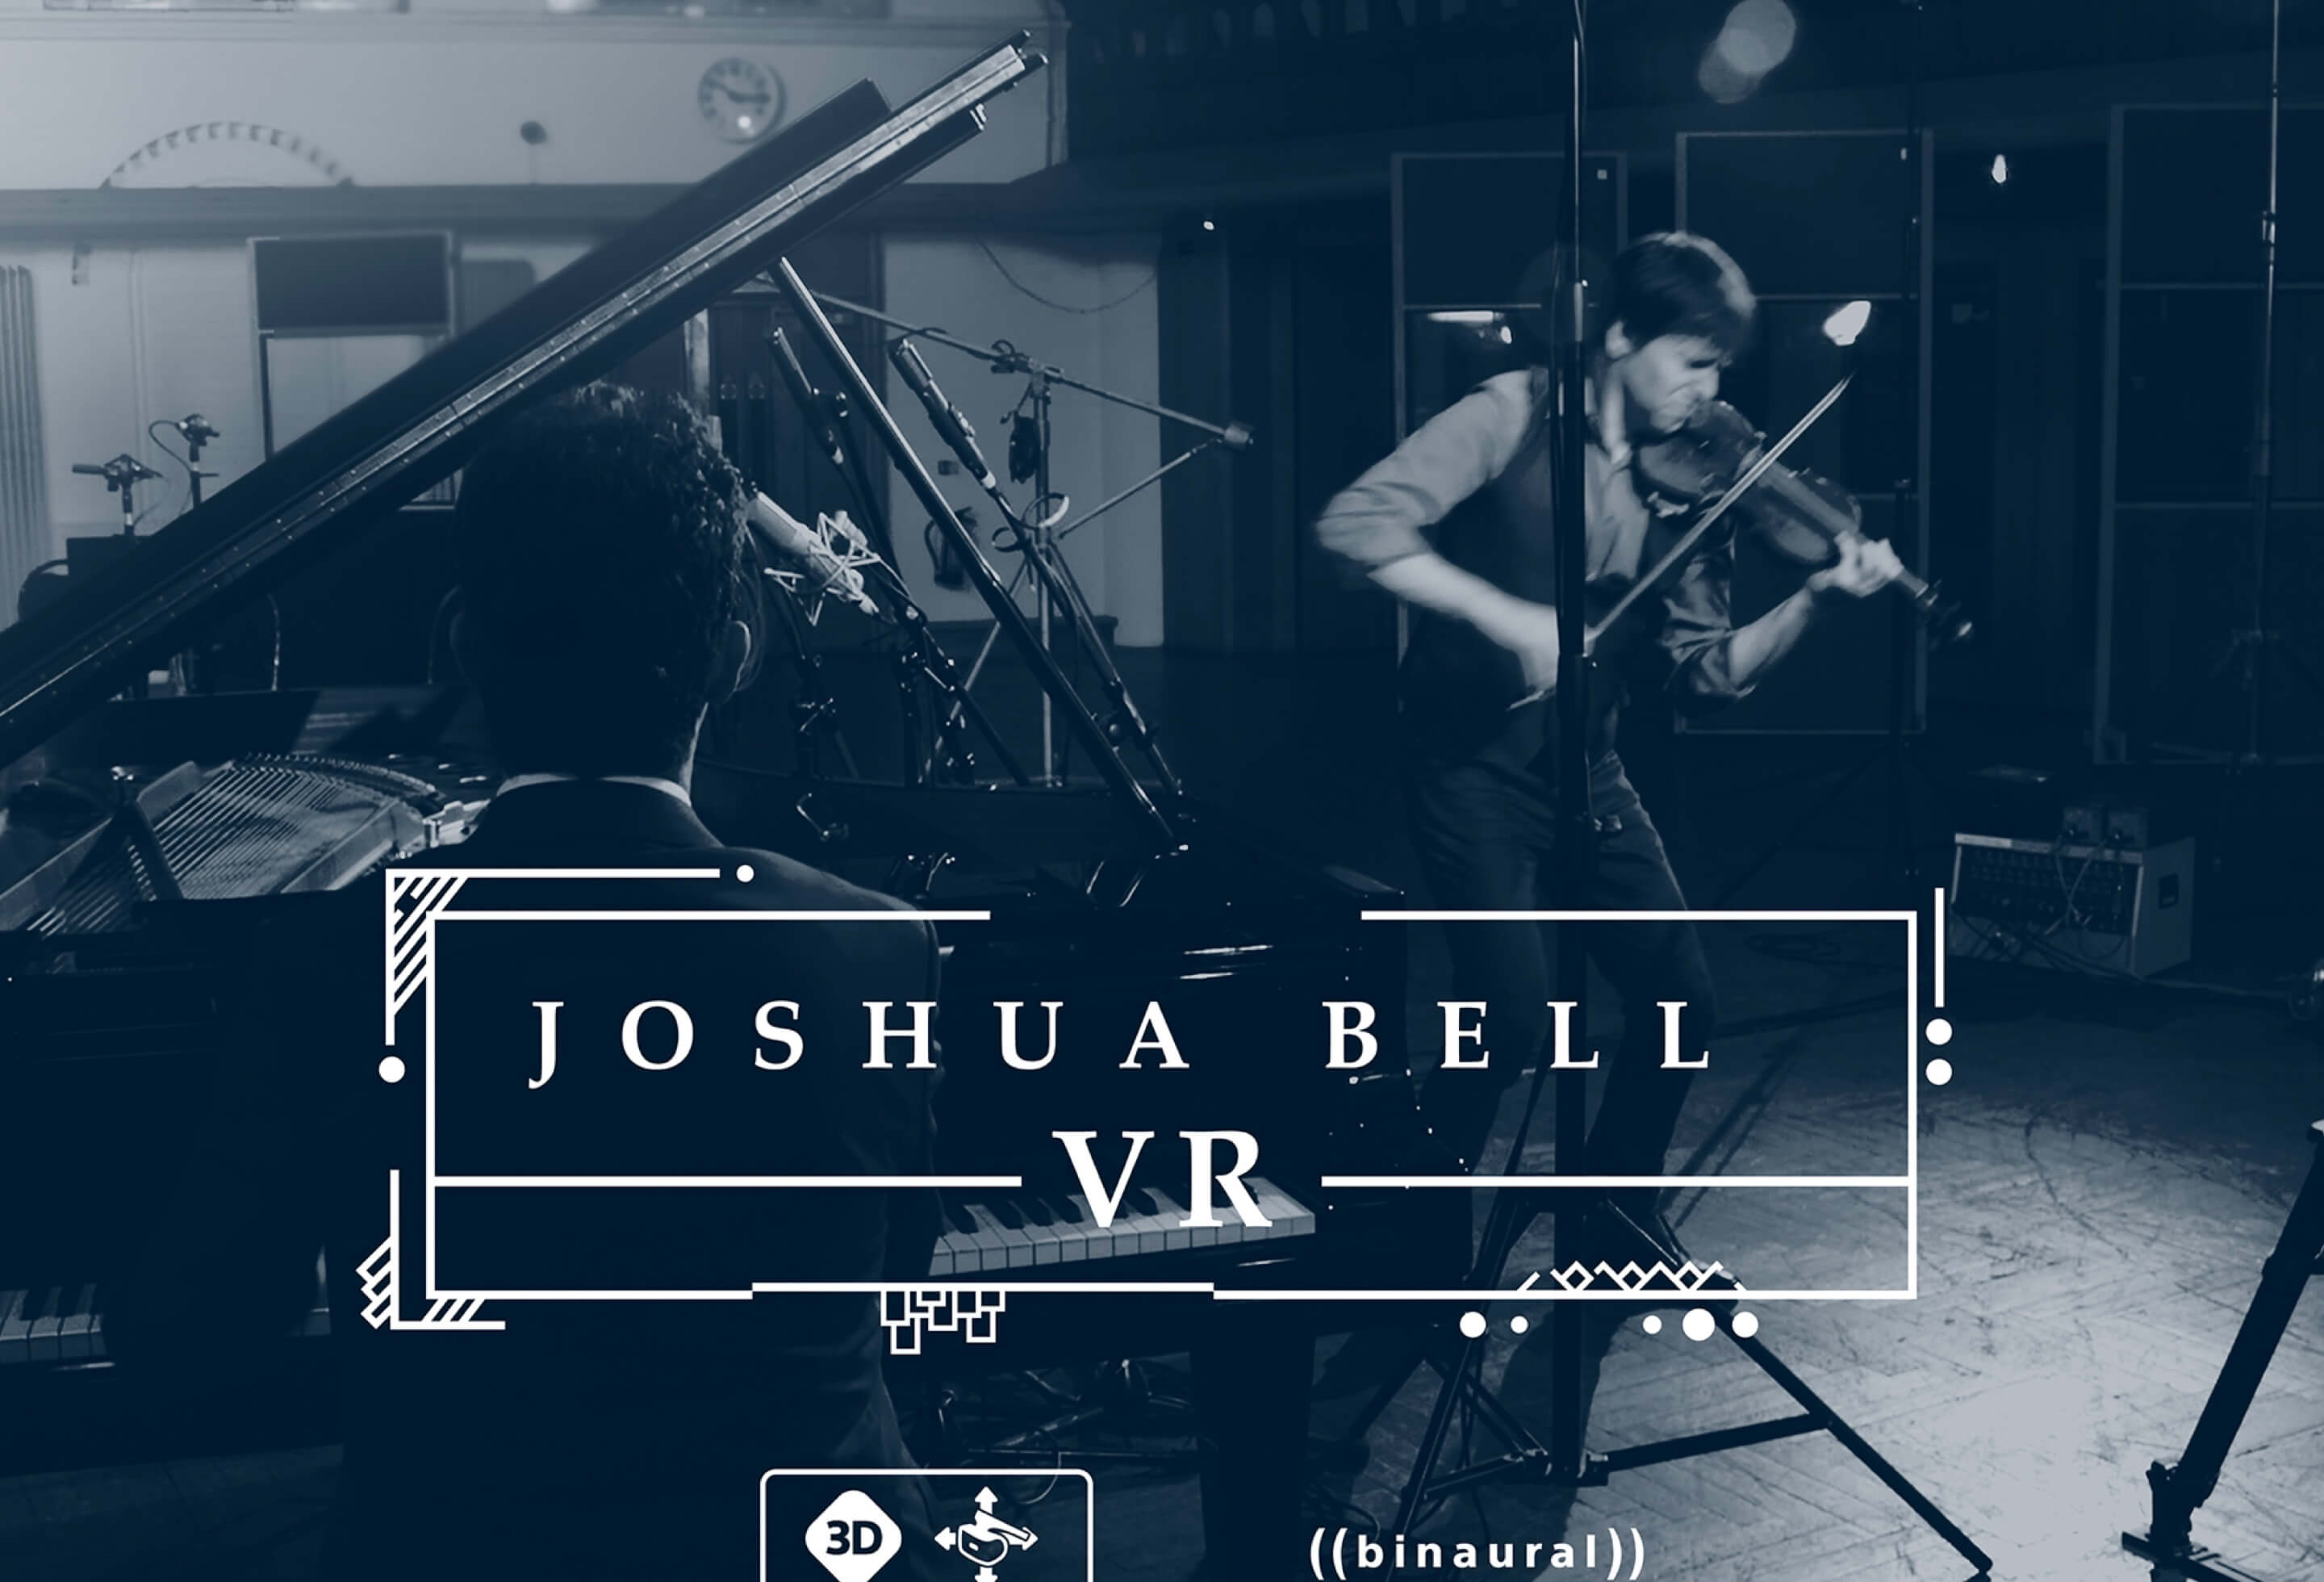 The hero image for Joshua Bell VR showing Joshua Bell playing his Violin